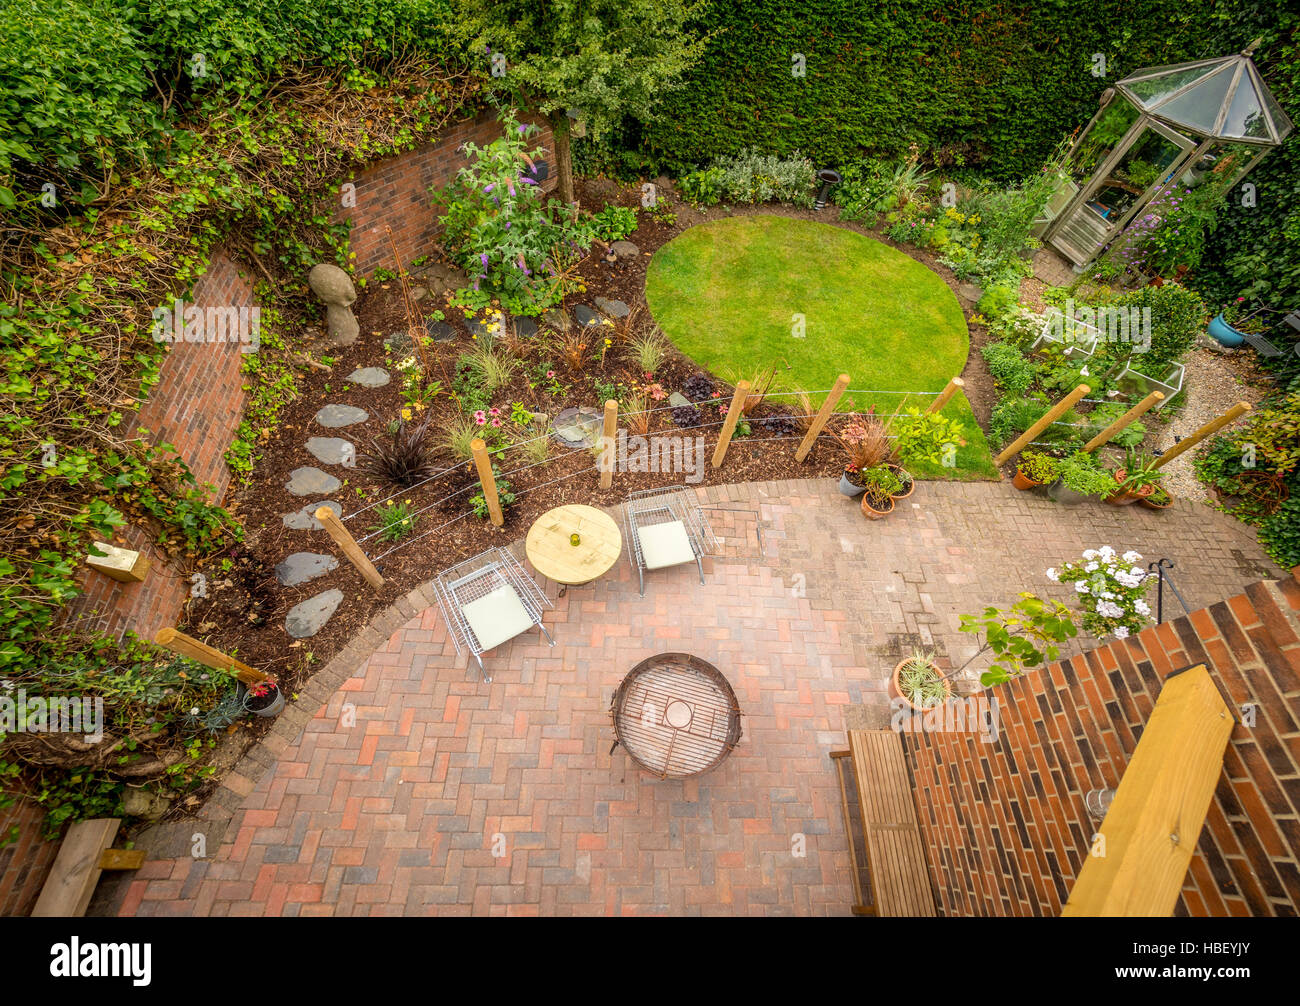 Modern garden seen from above with circular lawn and block paved patio - Stock Image